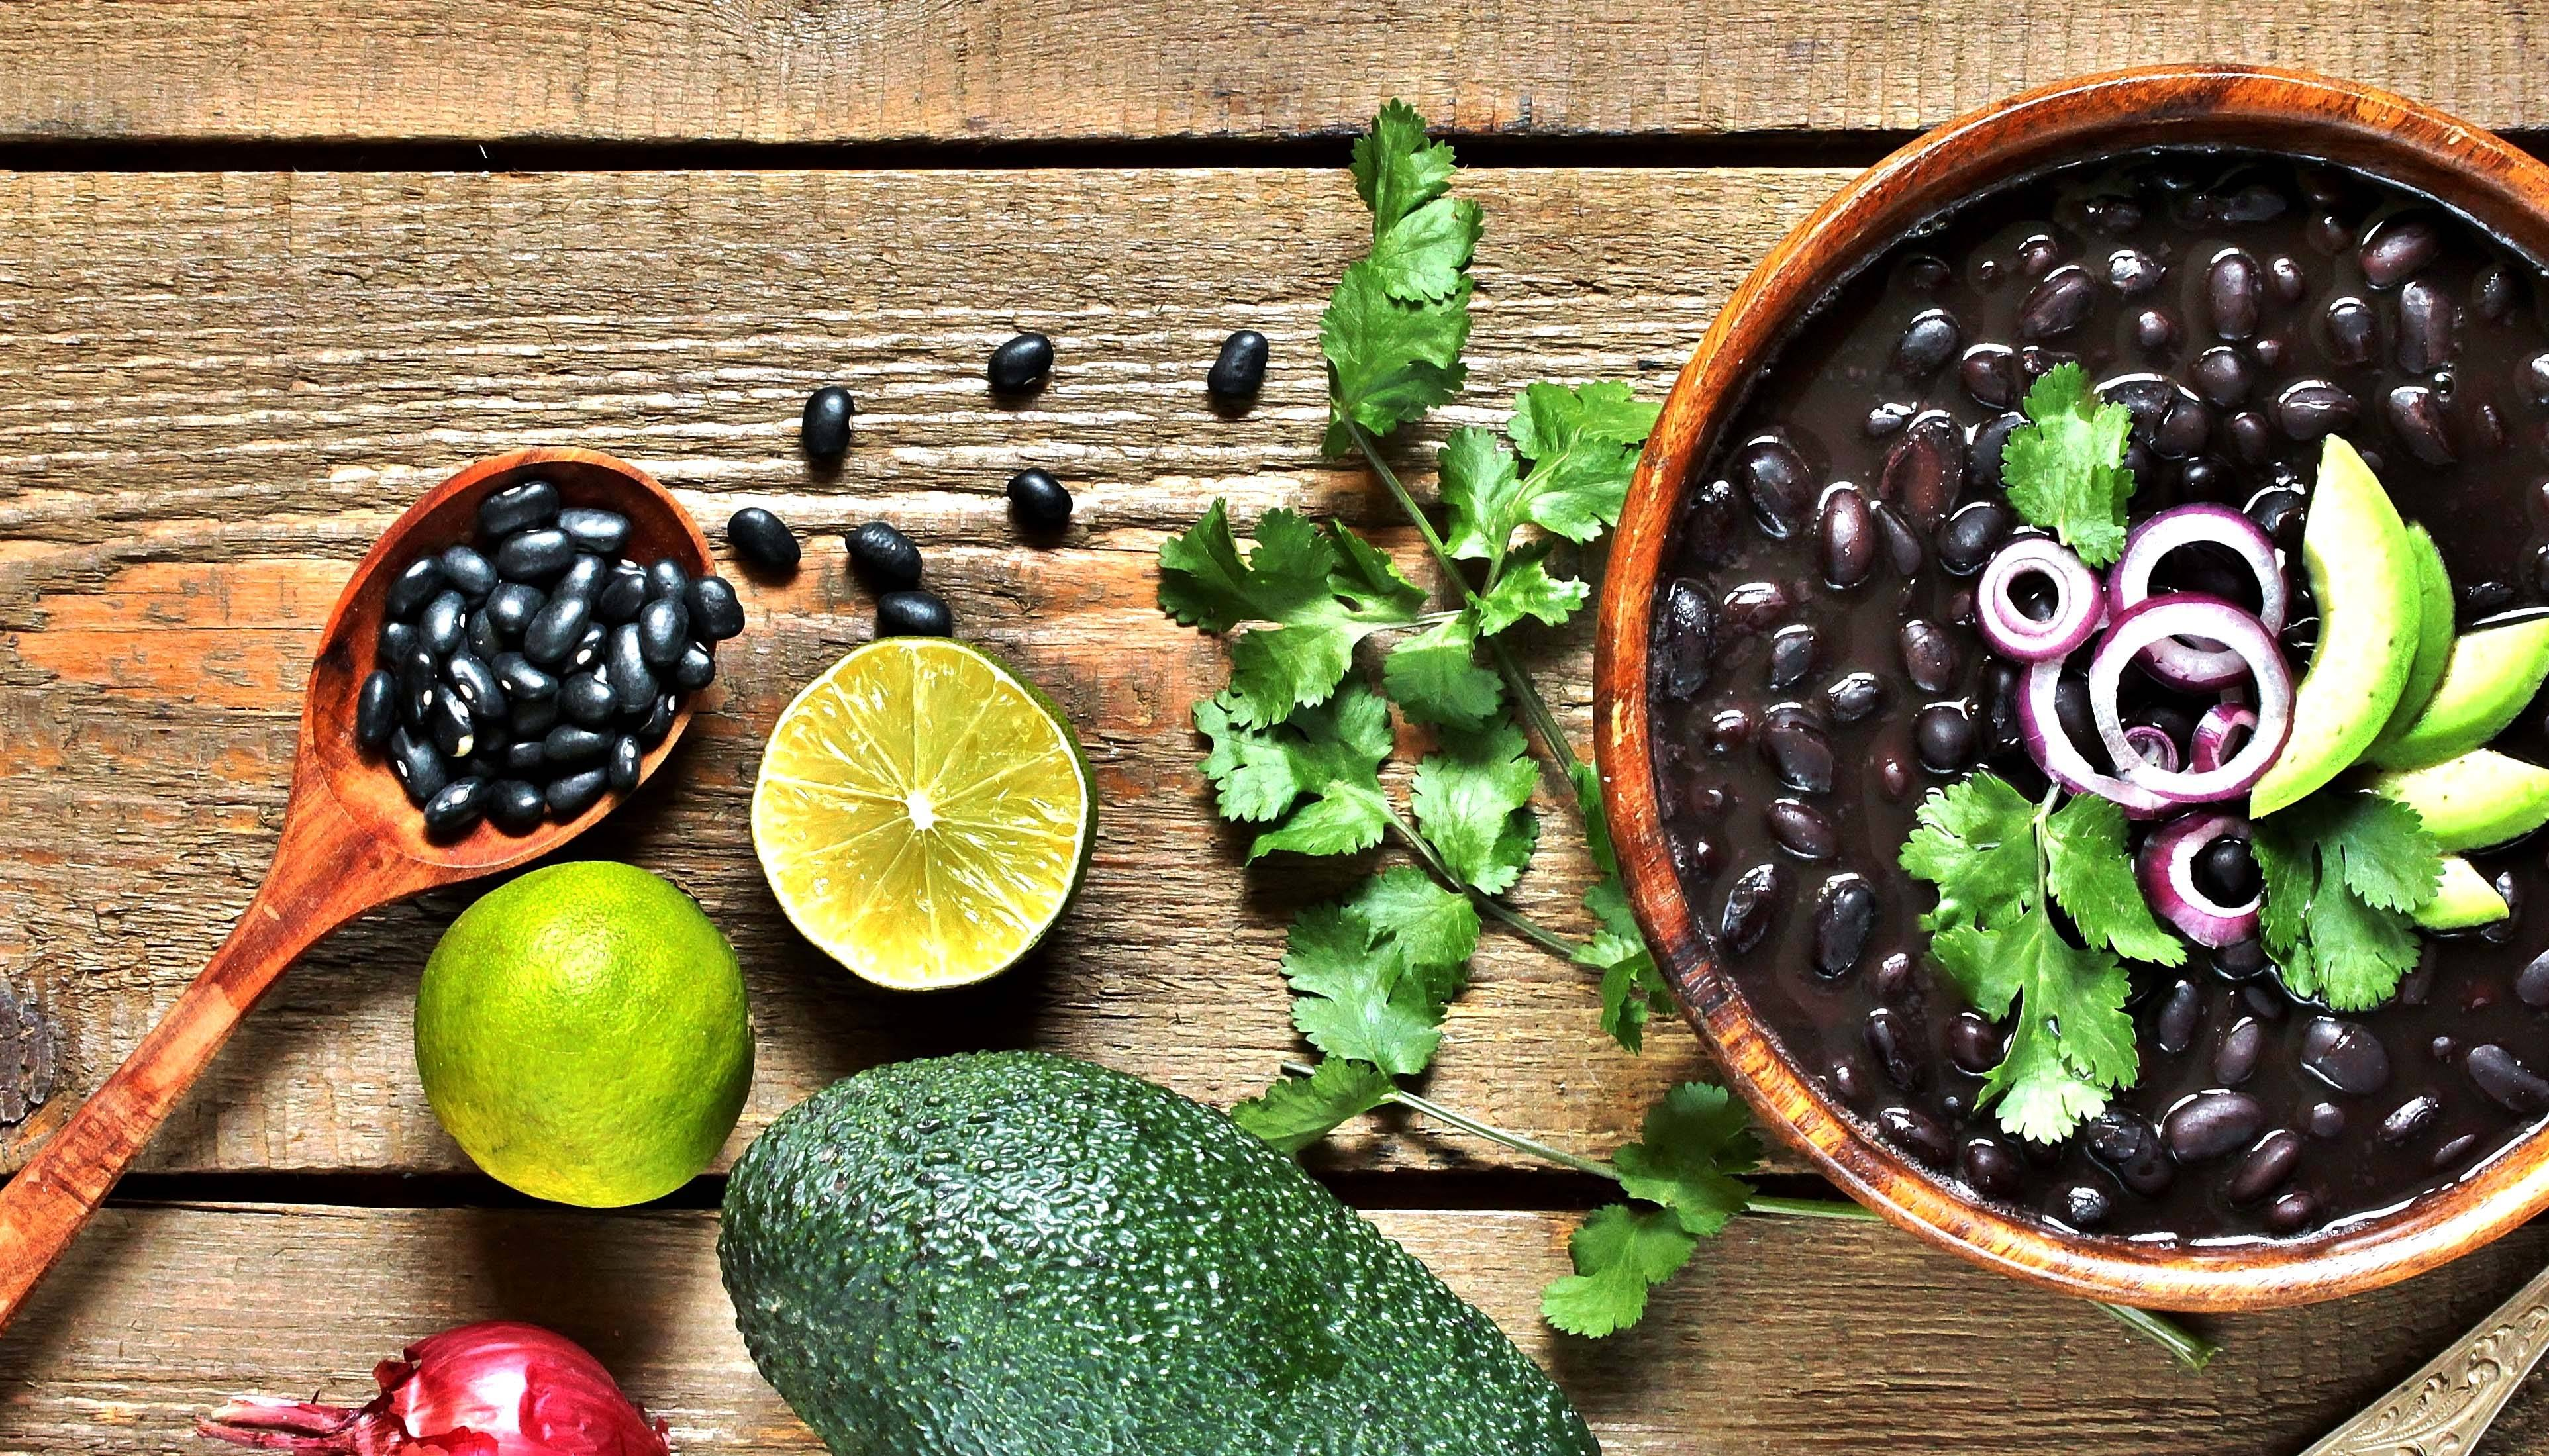 Lime, avocado, and bowl of black beans